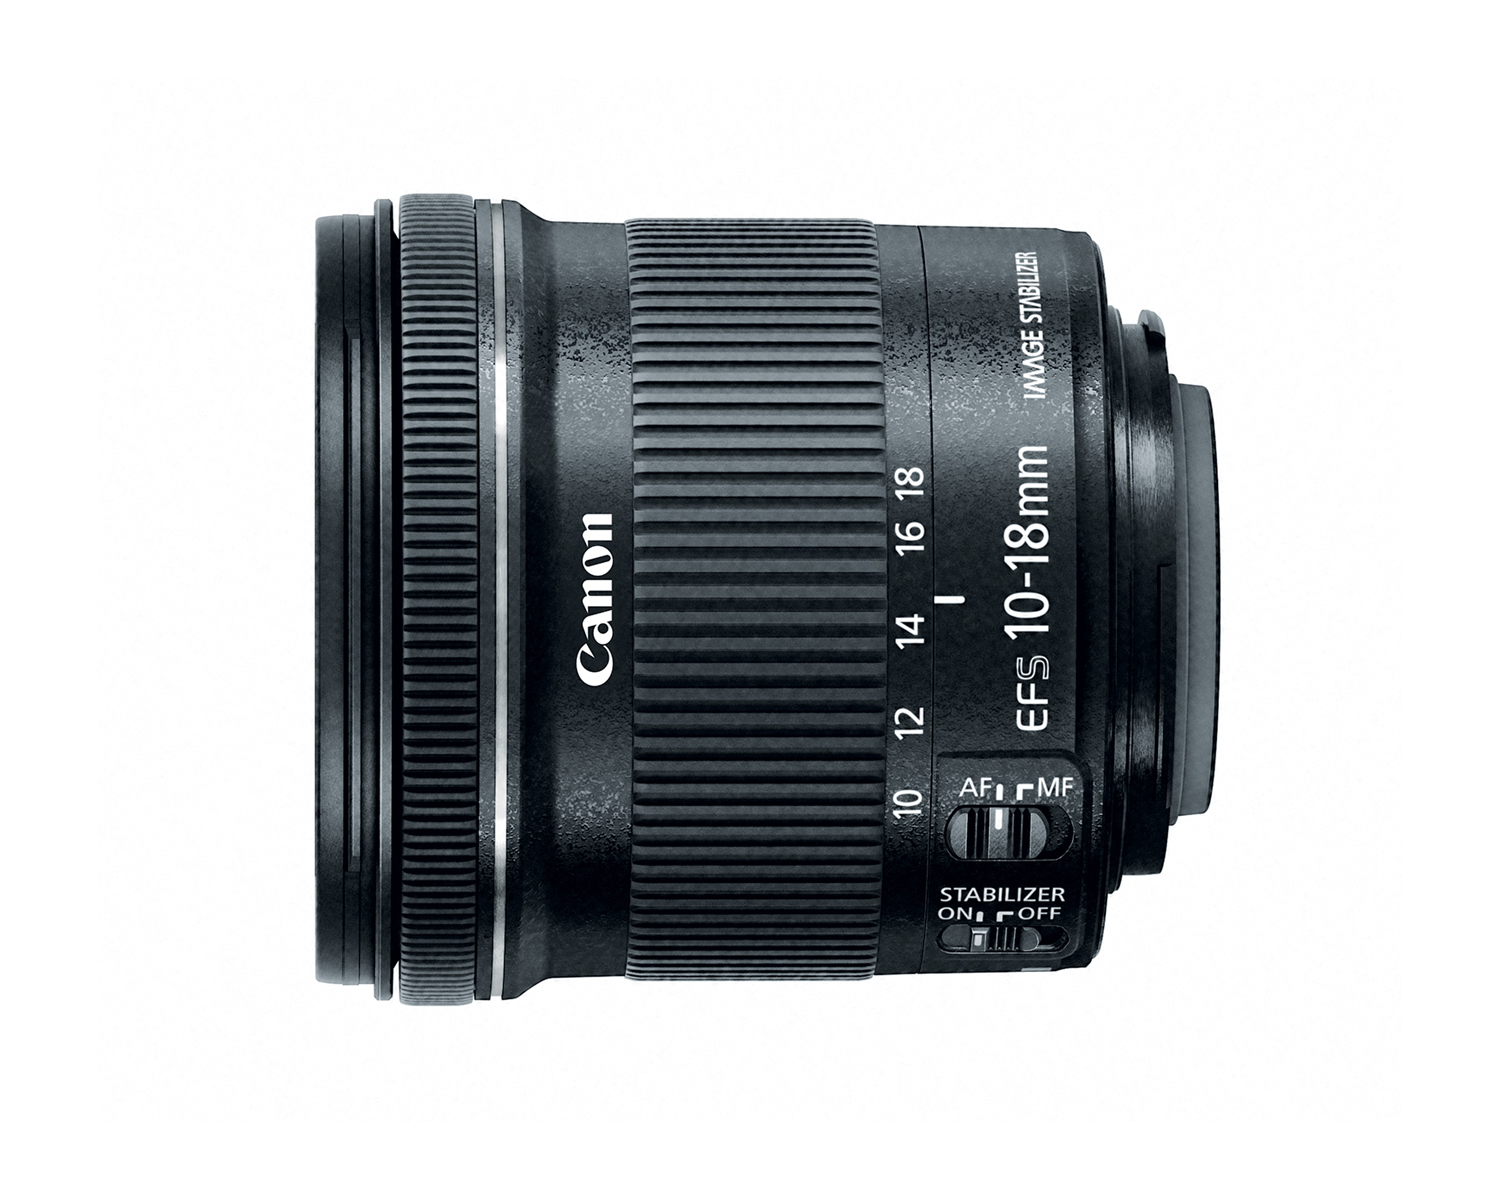 Canon Releases Two New Wide-Angle Lenses - The Beat: A Blog by ...